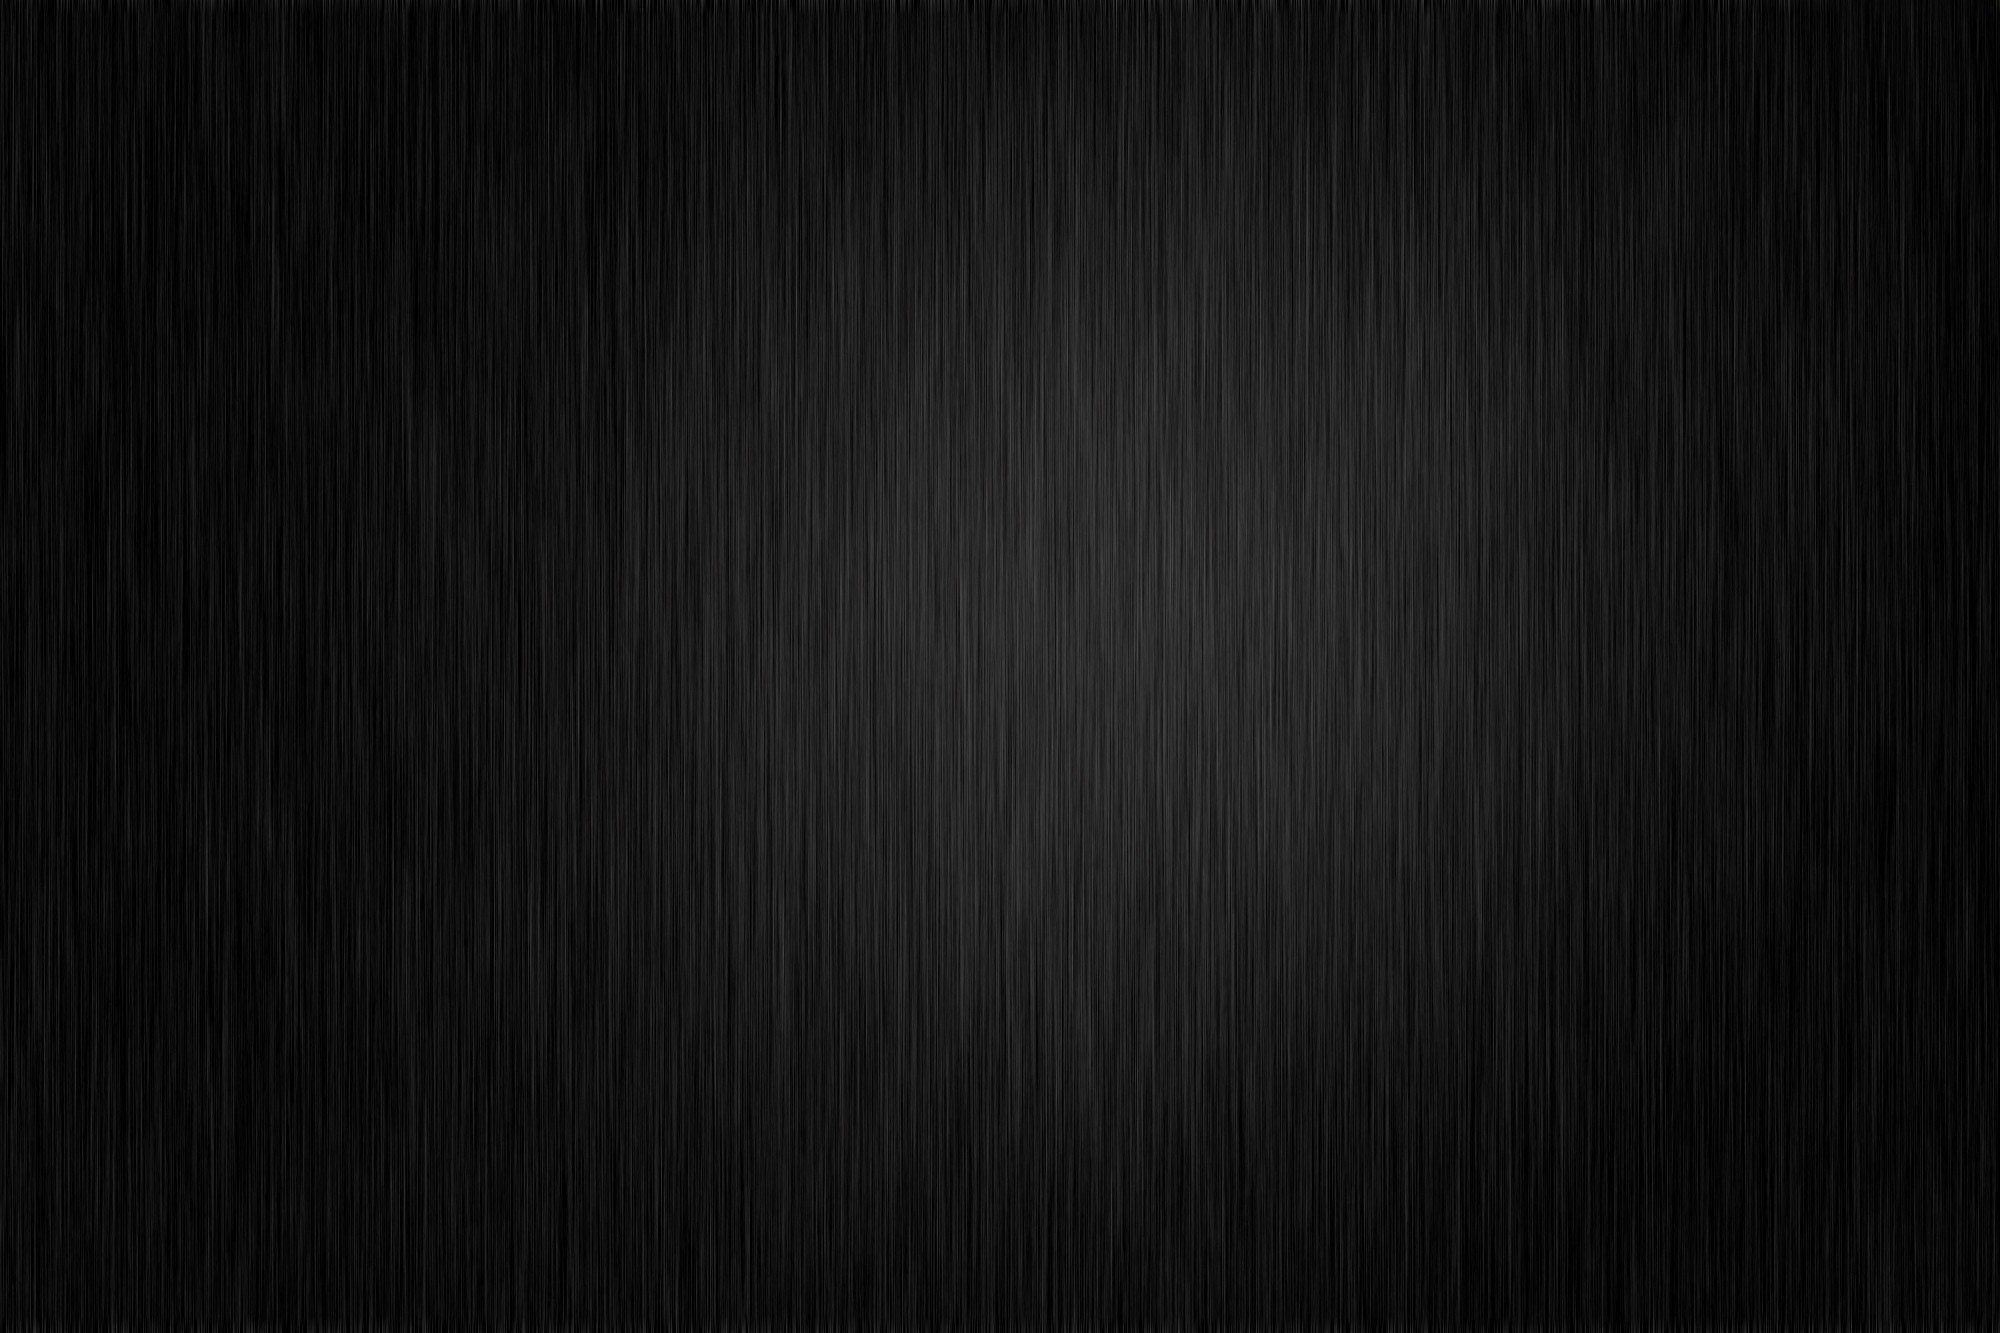 Simple black and white liniar background hd fuzznetworks butler simple black and white liniar background hd fuzznetworks voltagebd Gallery